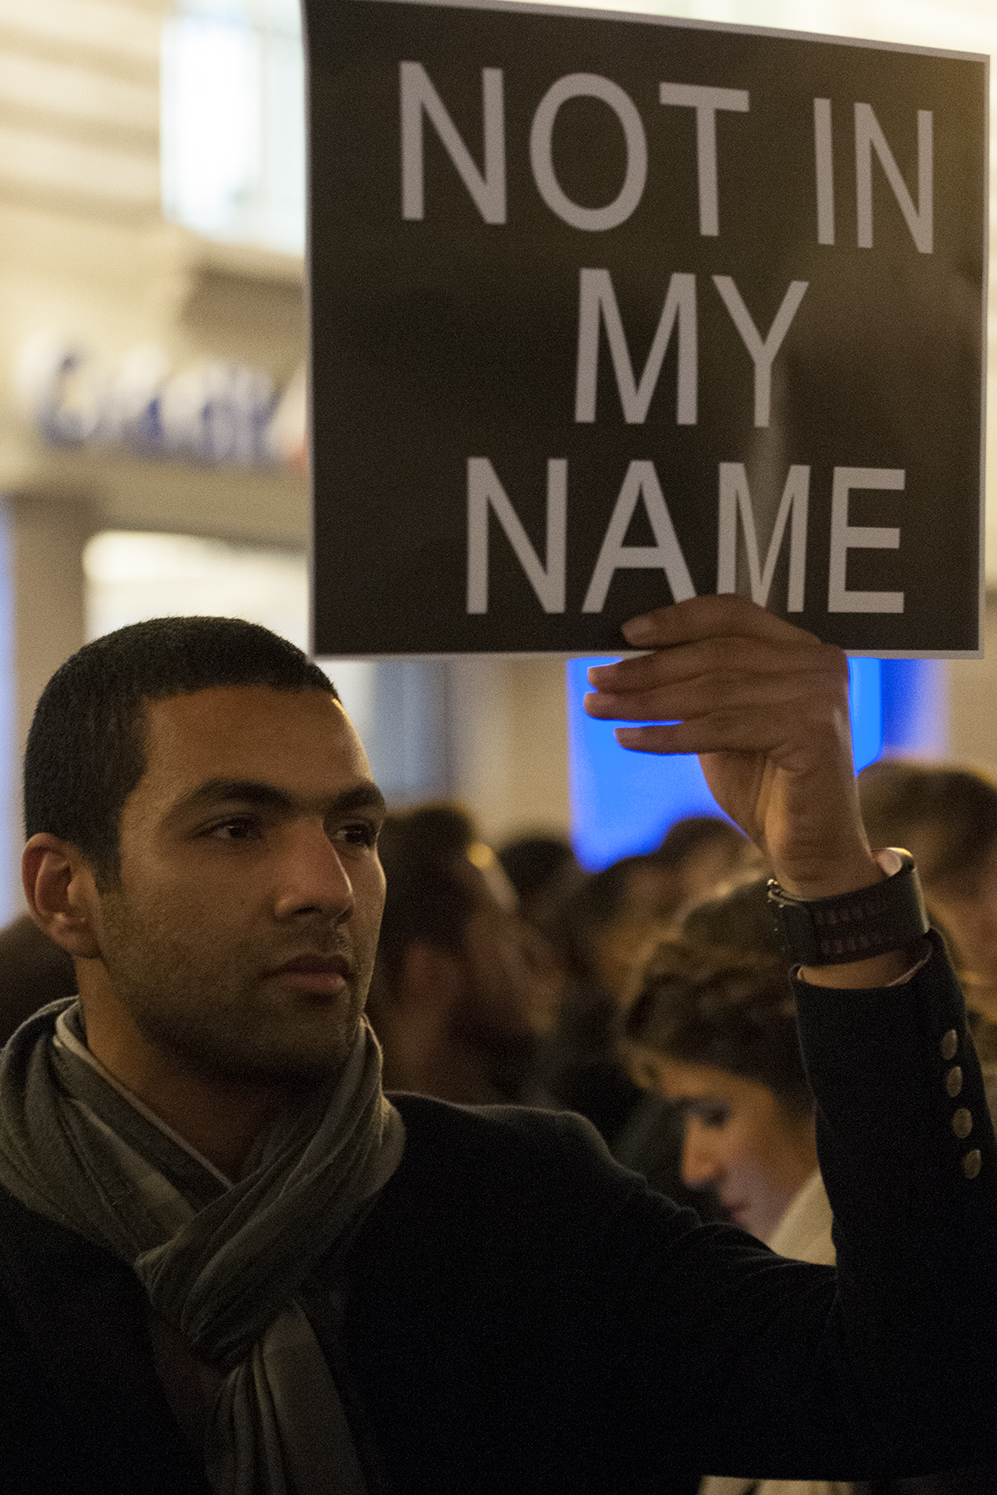 A man holding a sign denouncing the terrorist attack against Charlie Hebdo